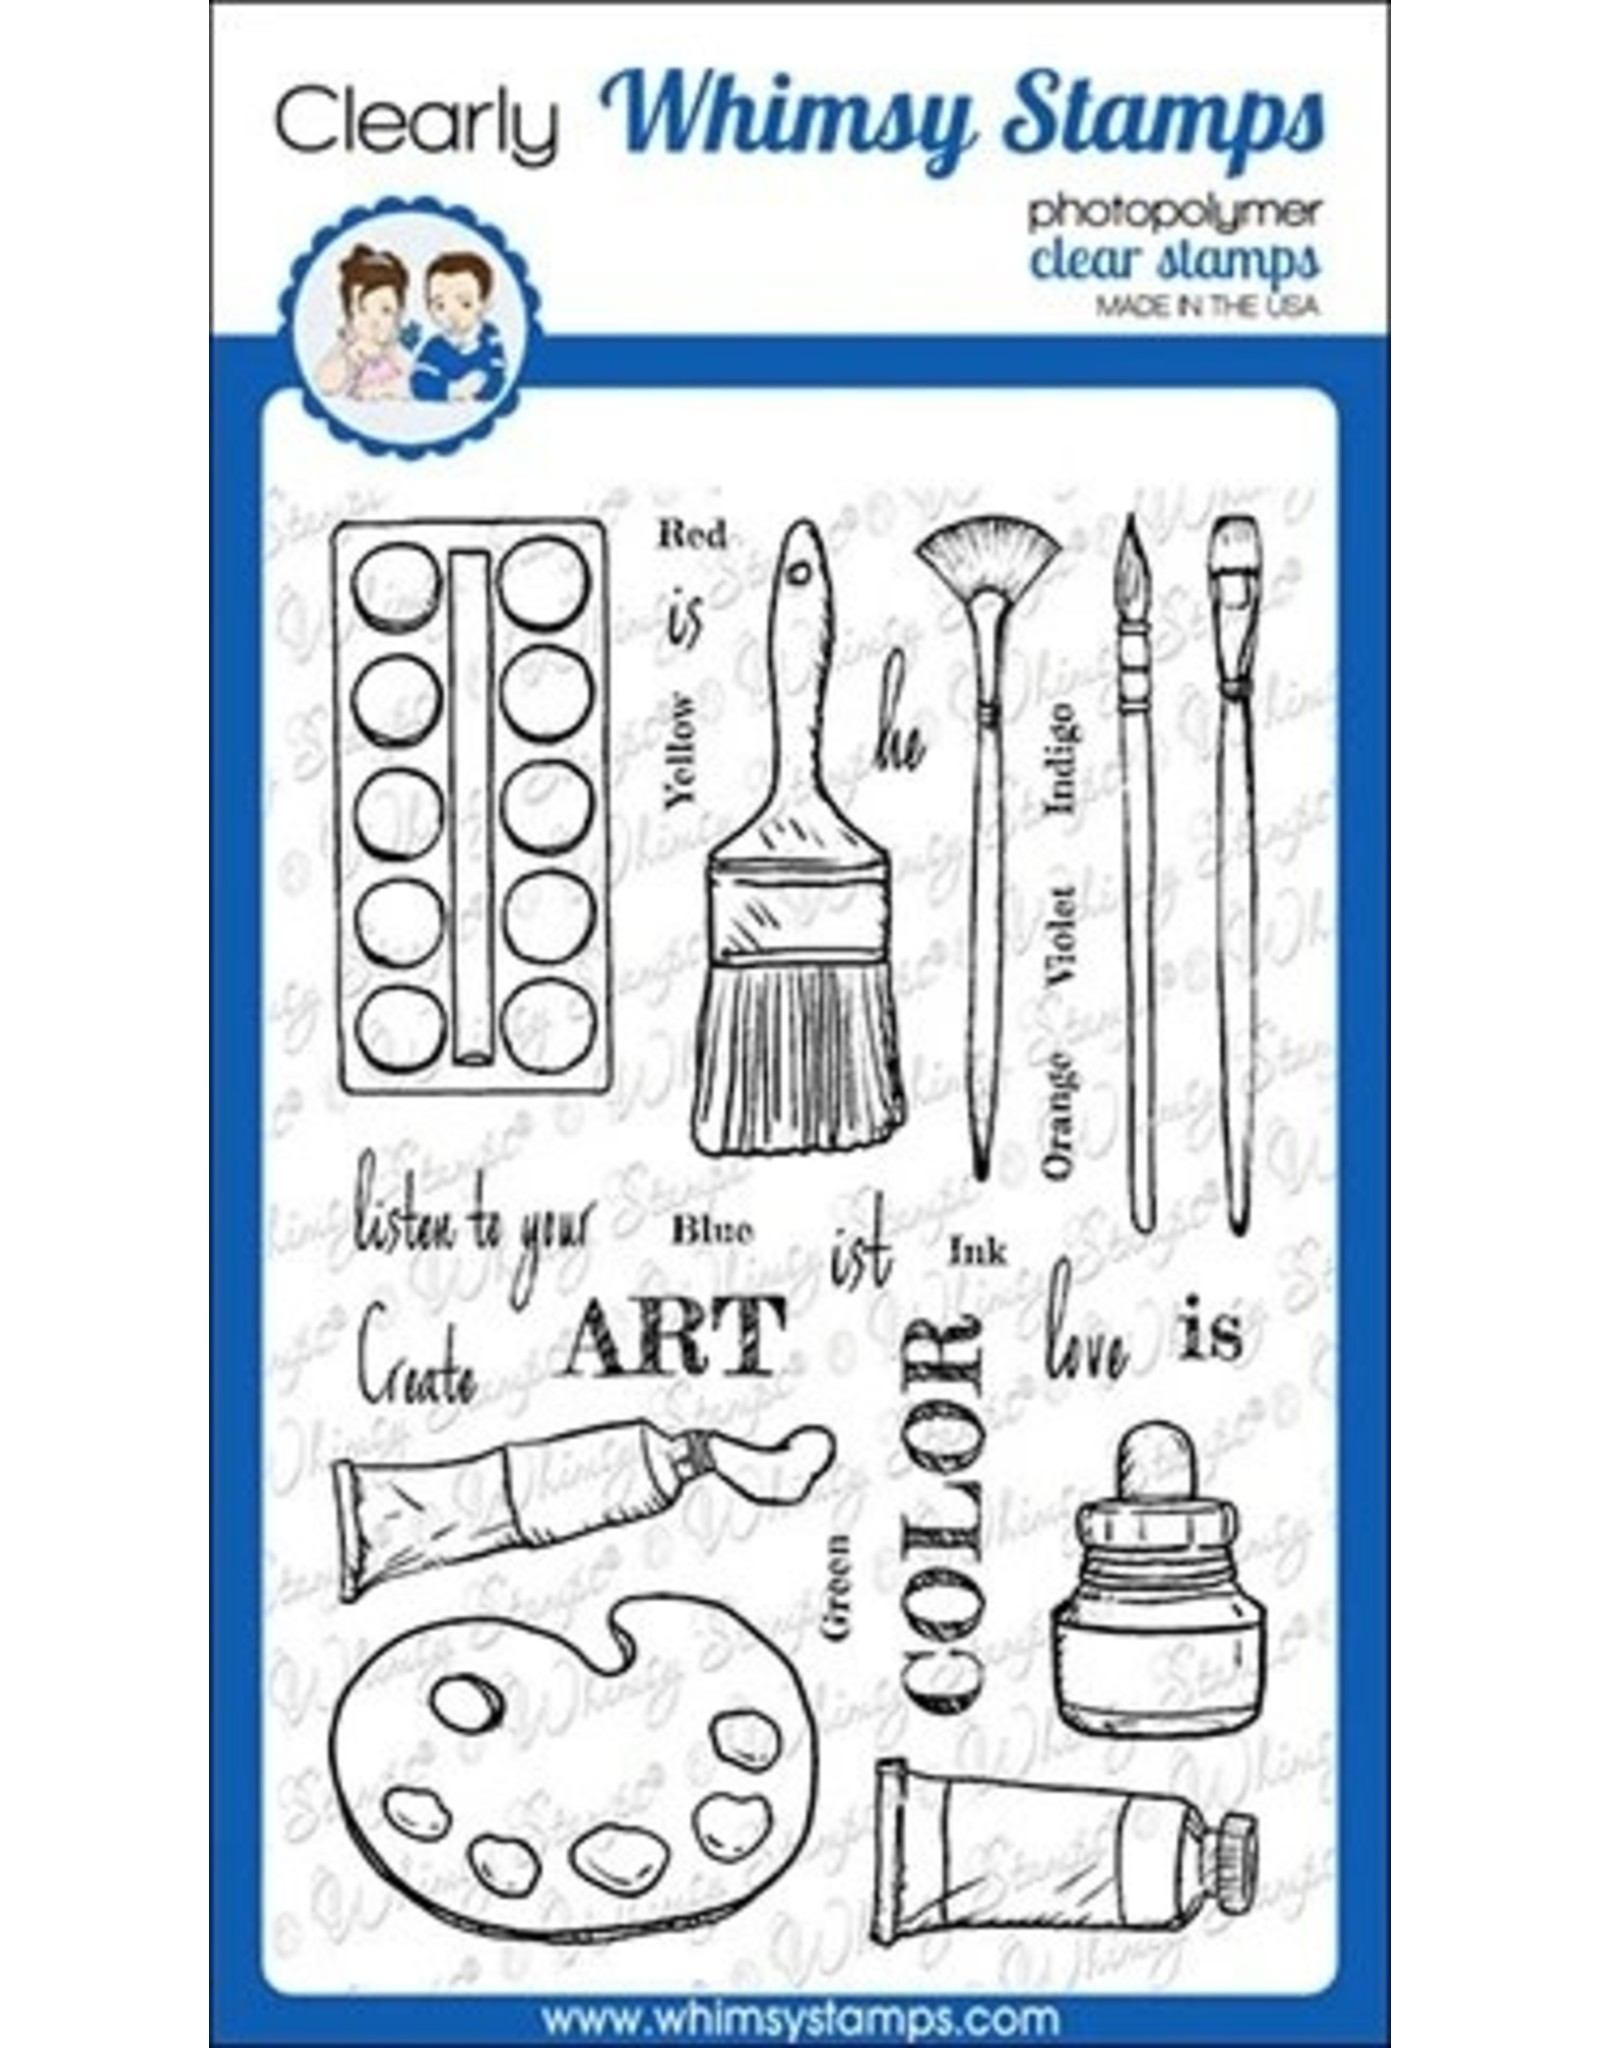 Whimsy Stamps Whimsy Stamps Artist Toolkit Clear Stamps CWSD254